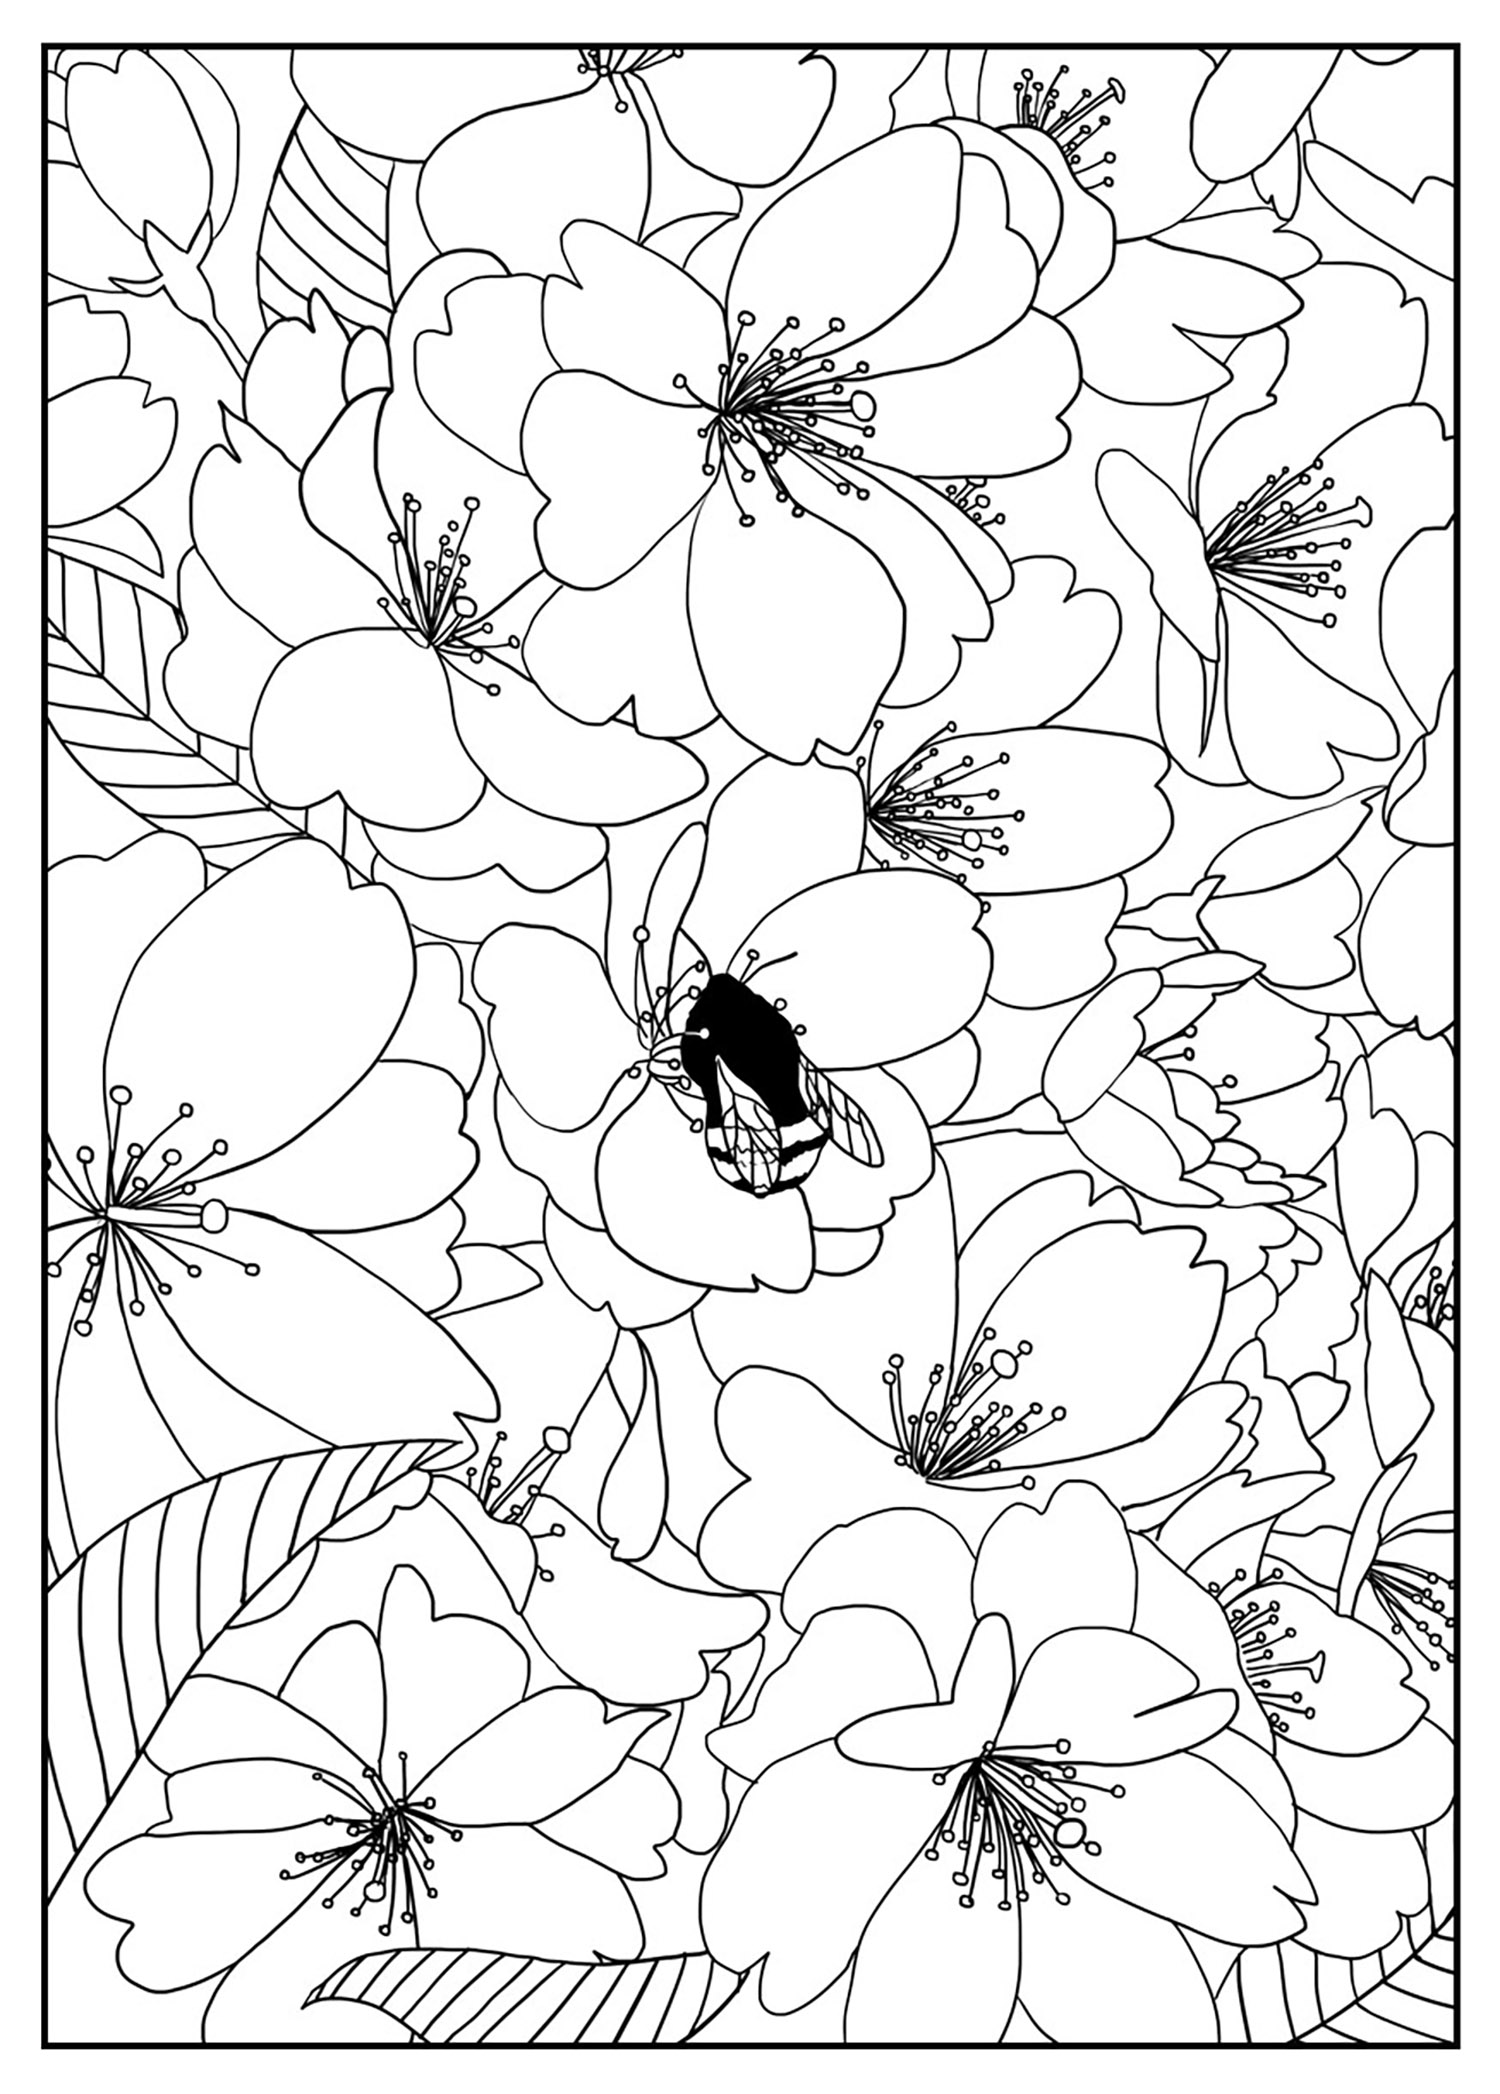 free printable coloring pages of flowers 200 free halloween coloring pages for kids the suburban flowers pages coloring free printable of